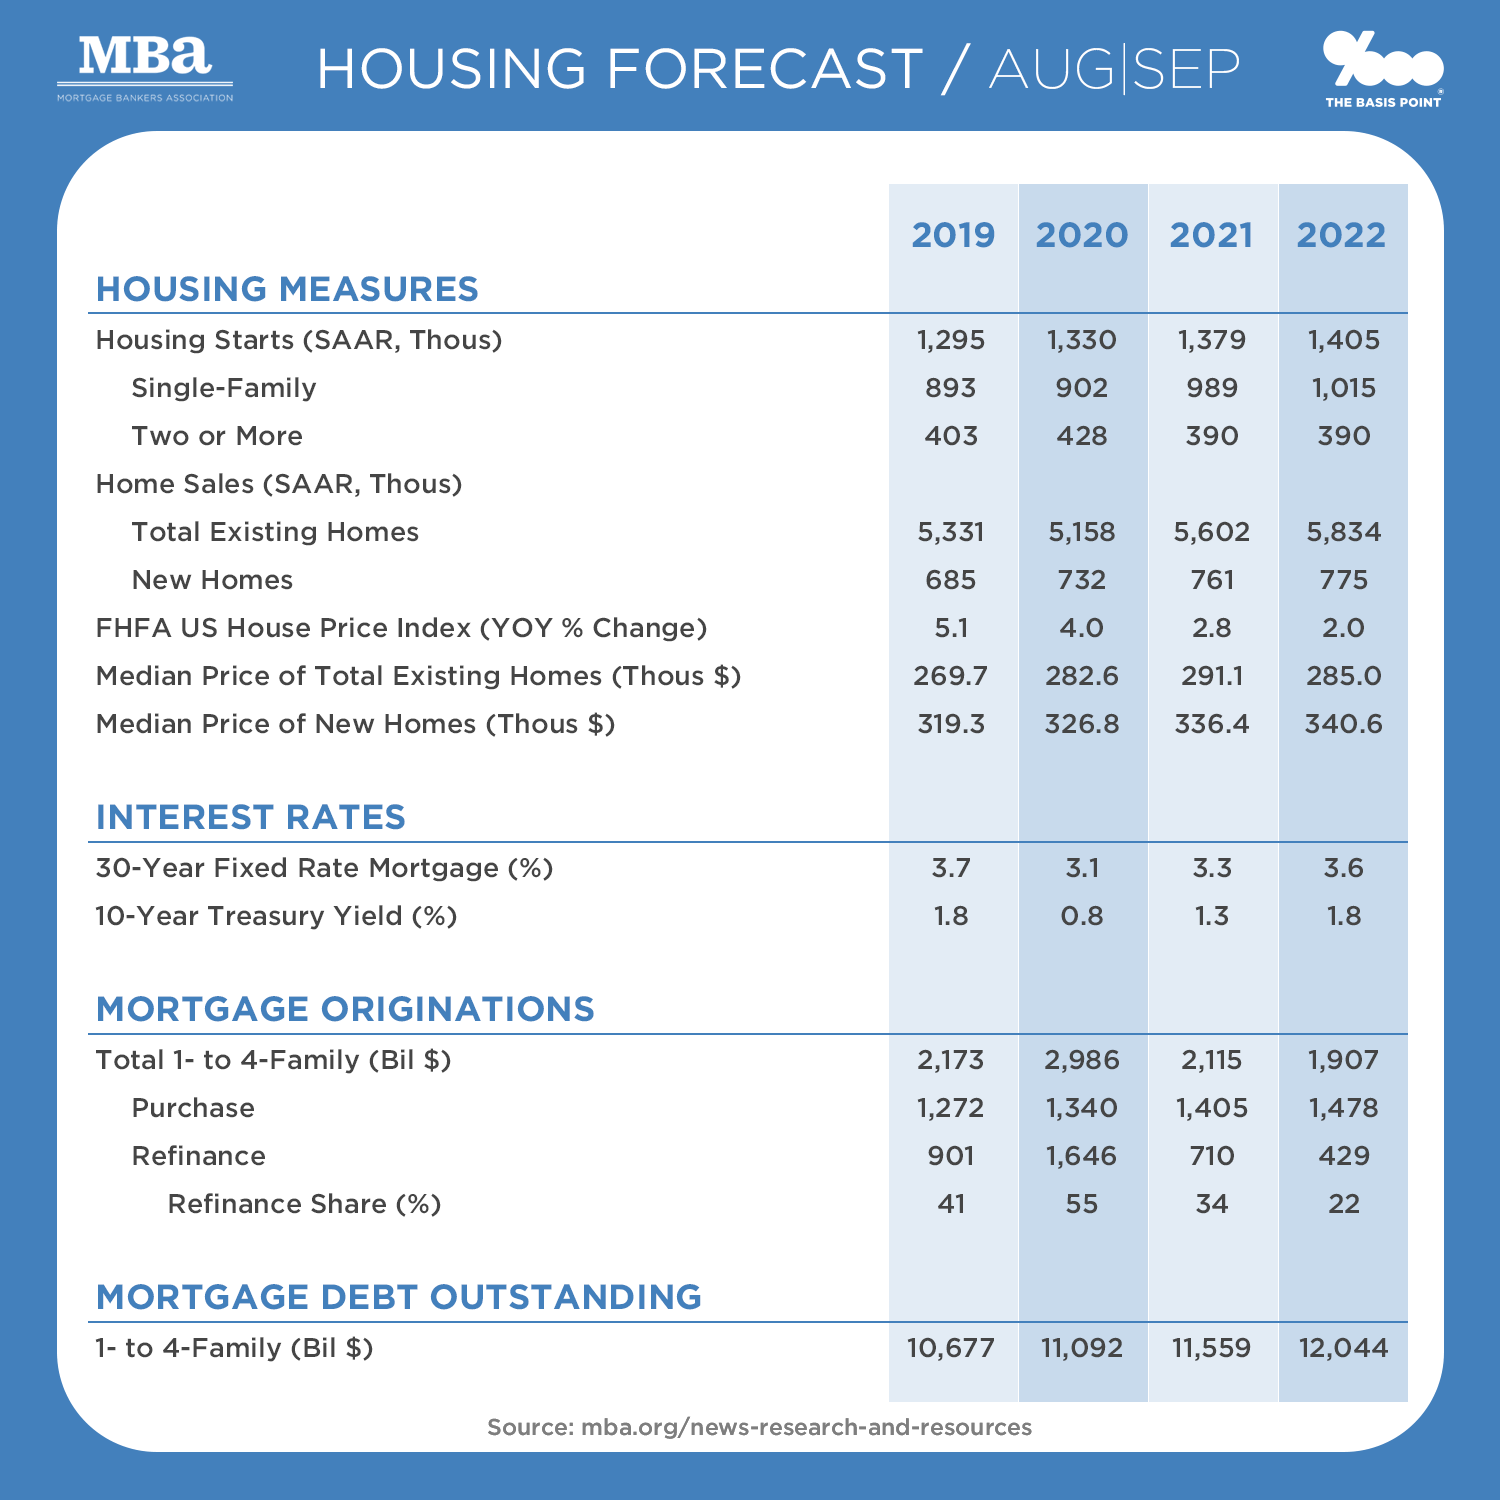 Home Prices, Mortgage Rates, Size of Mortgage Market 2020 to 2022 Outlook - MBA, The Basis Point